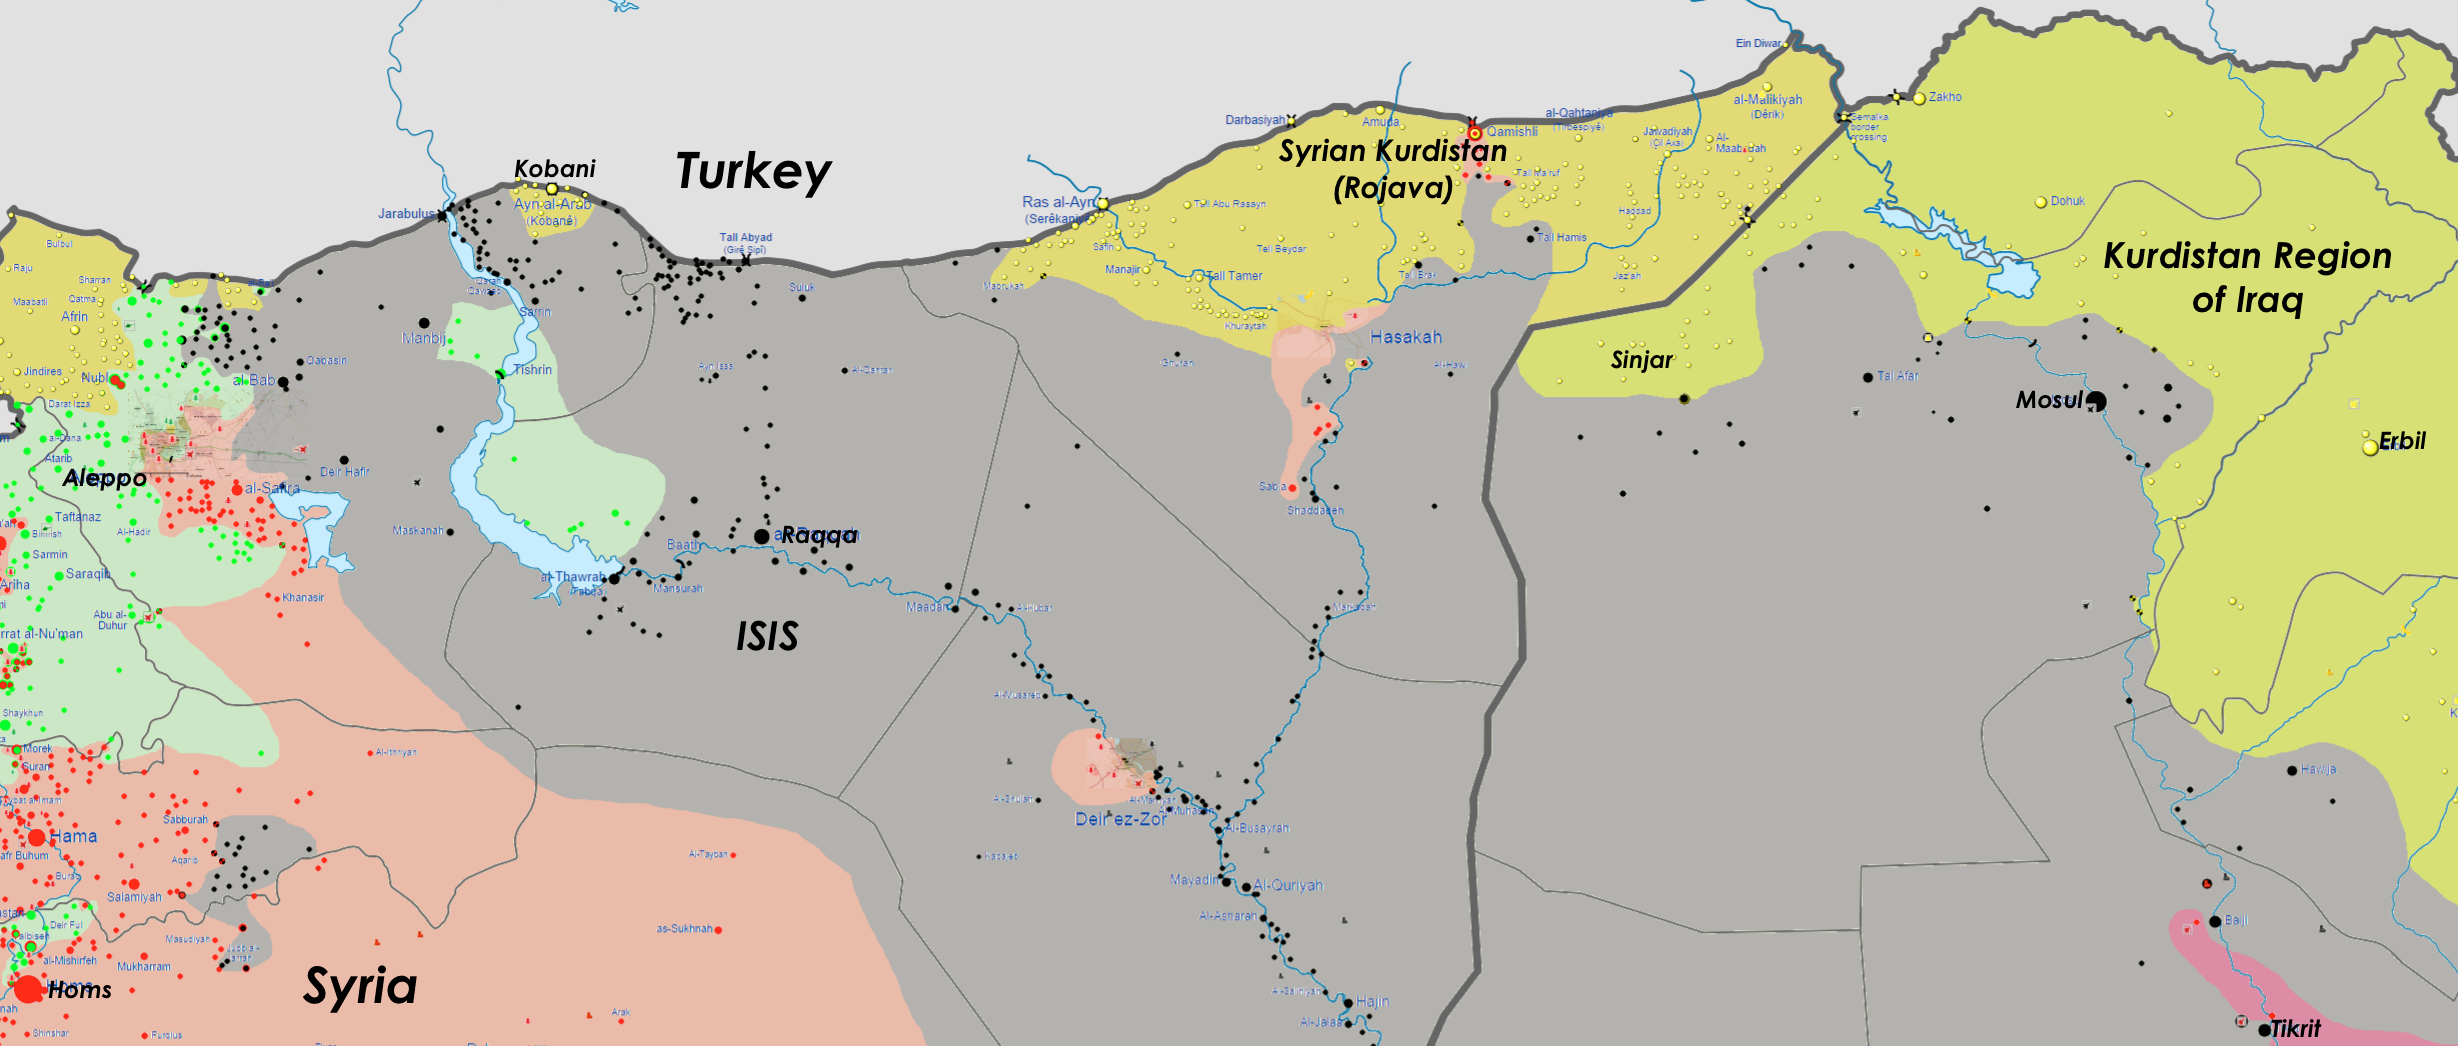 northern syria iraq isis map kobani raqqa erbil september 26 2014